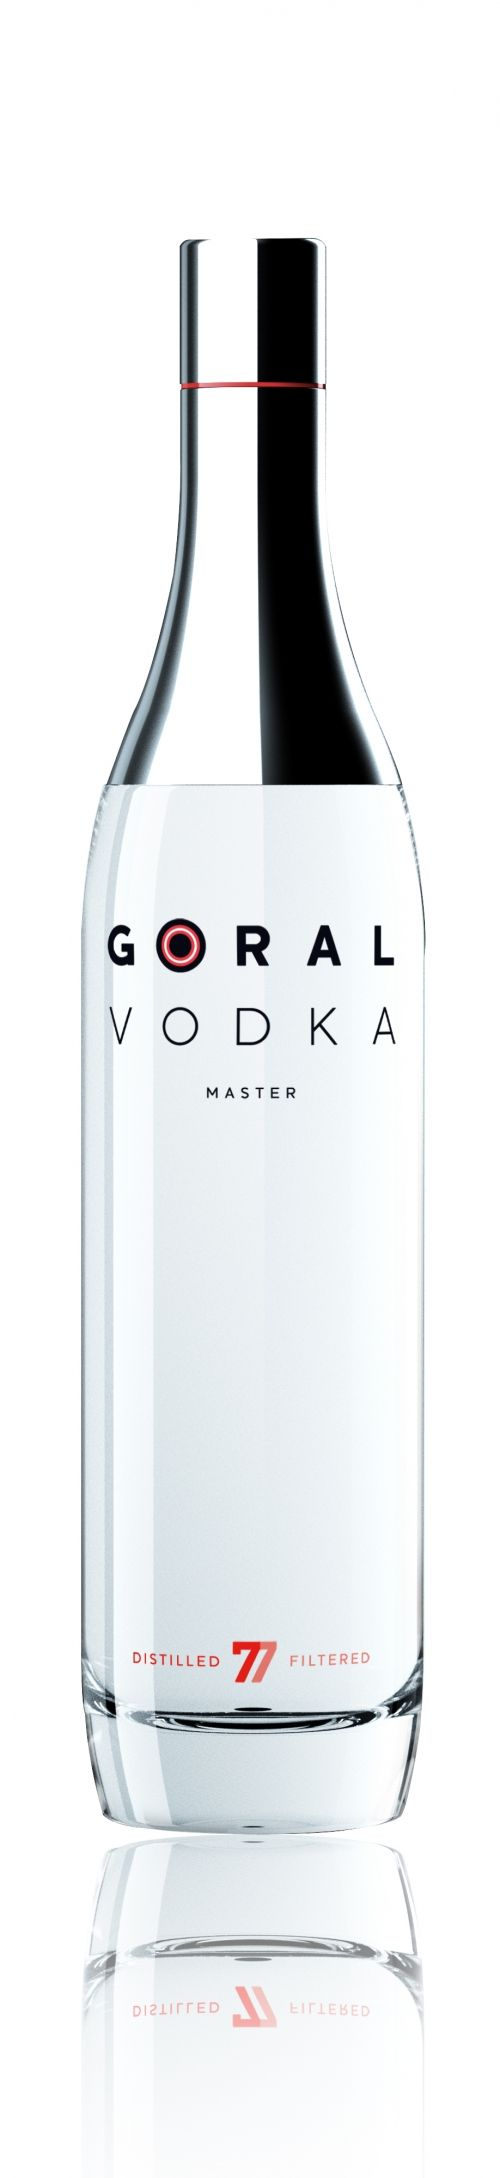 Goral Vodka MASTER Vodka from Slovakia seeking for distributors - Beverage Trade Network